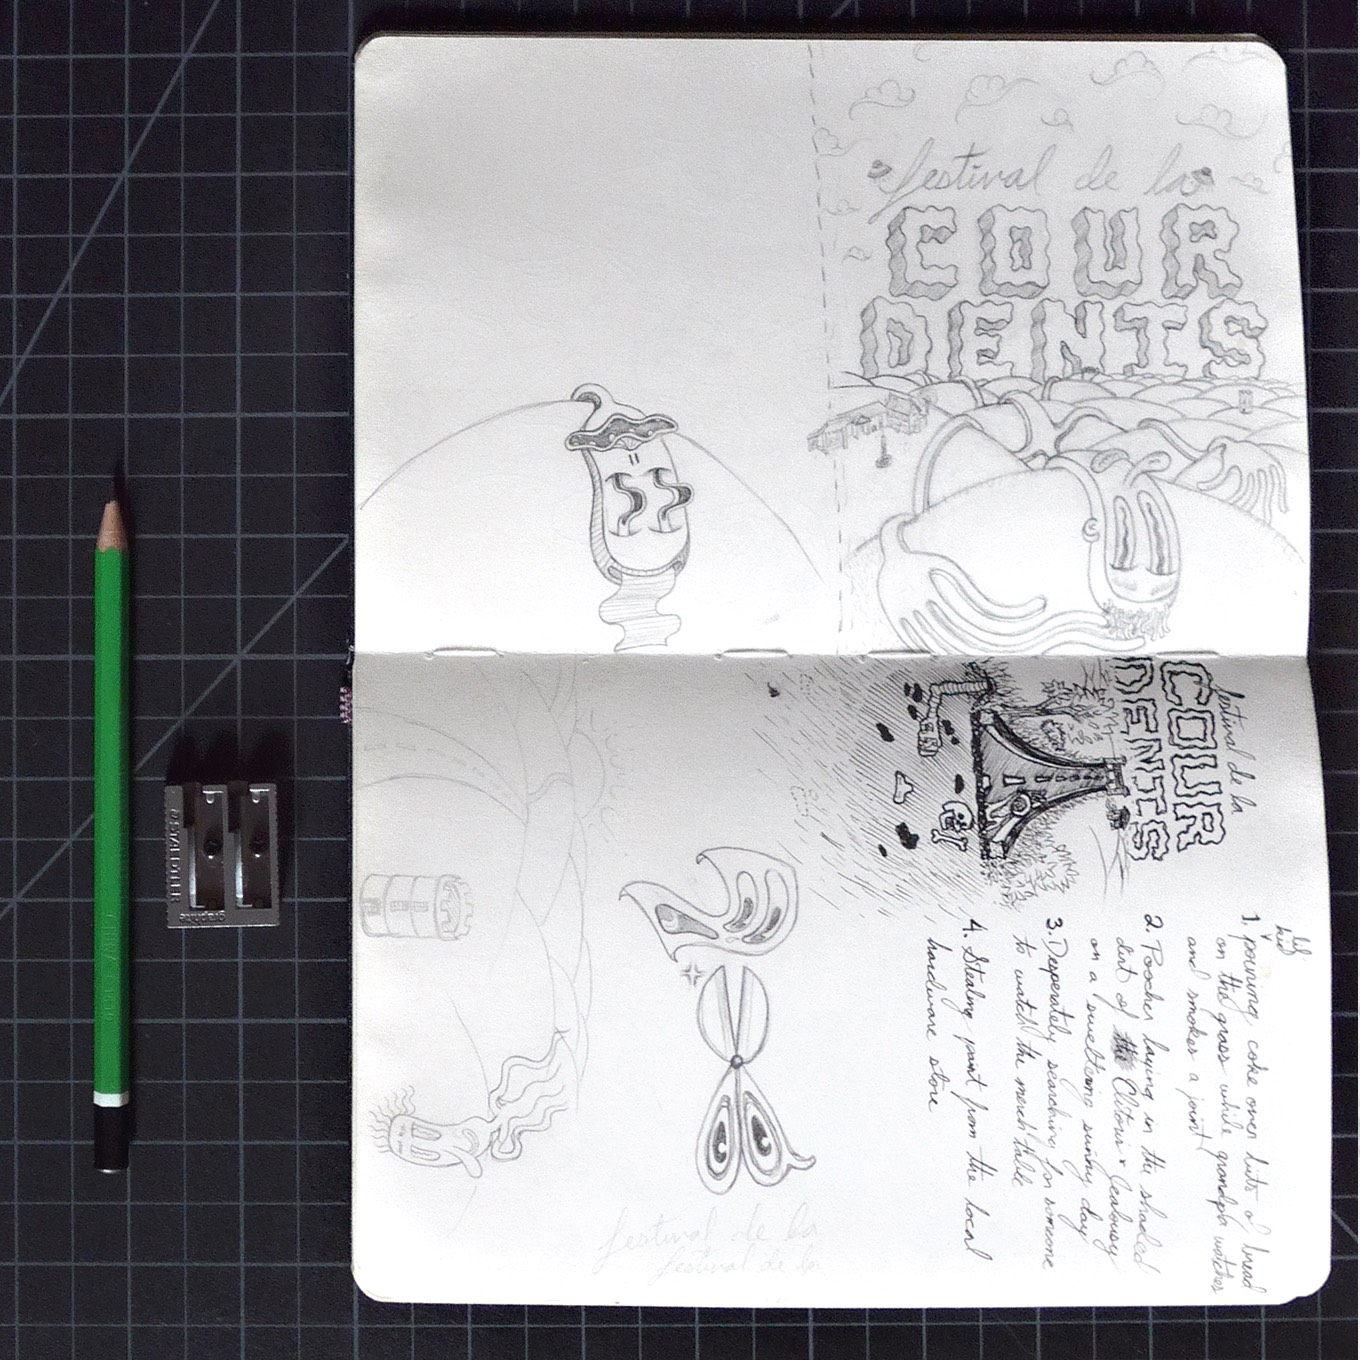 Photo of sketchbook displaying Festival de la Cour Denis 2017 concept sketch